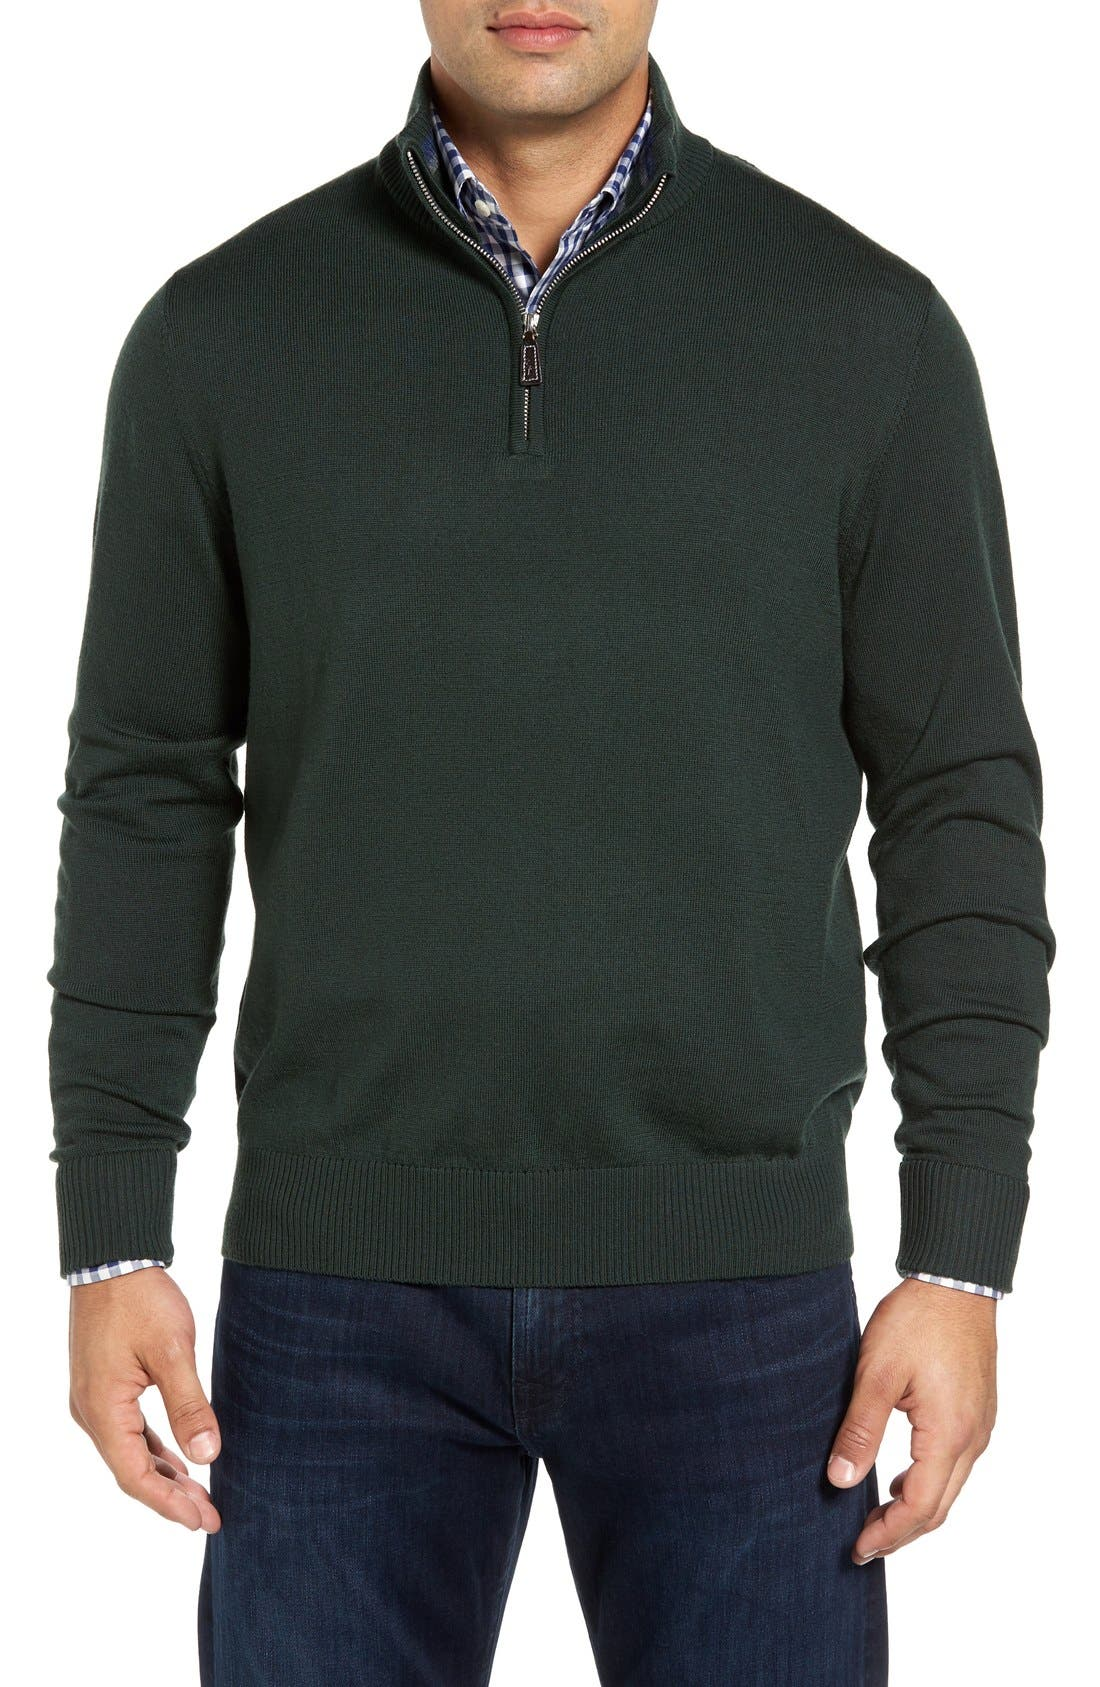 S.Cascade Quarter Zip Wool Sweater,                             Main thumbnail 1, color,                             310